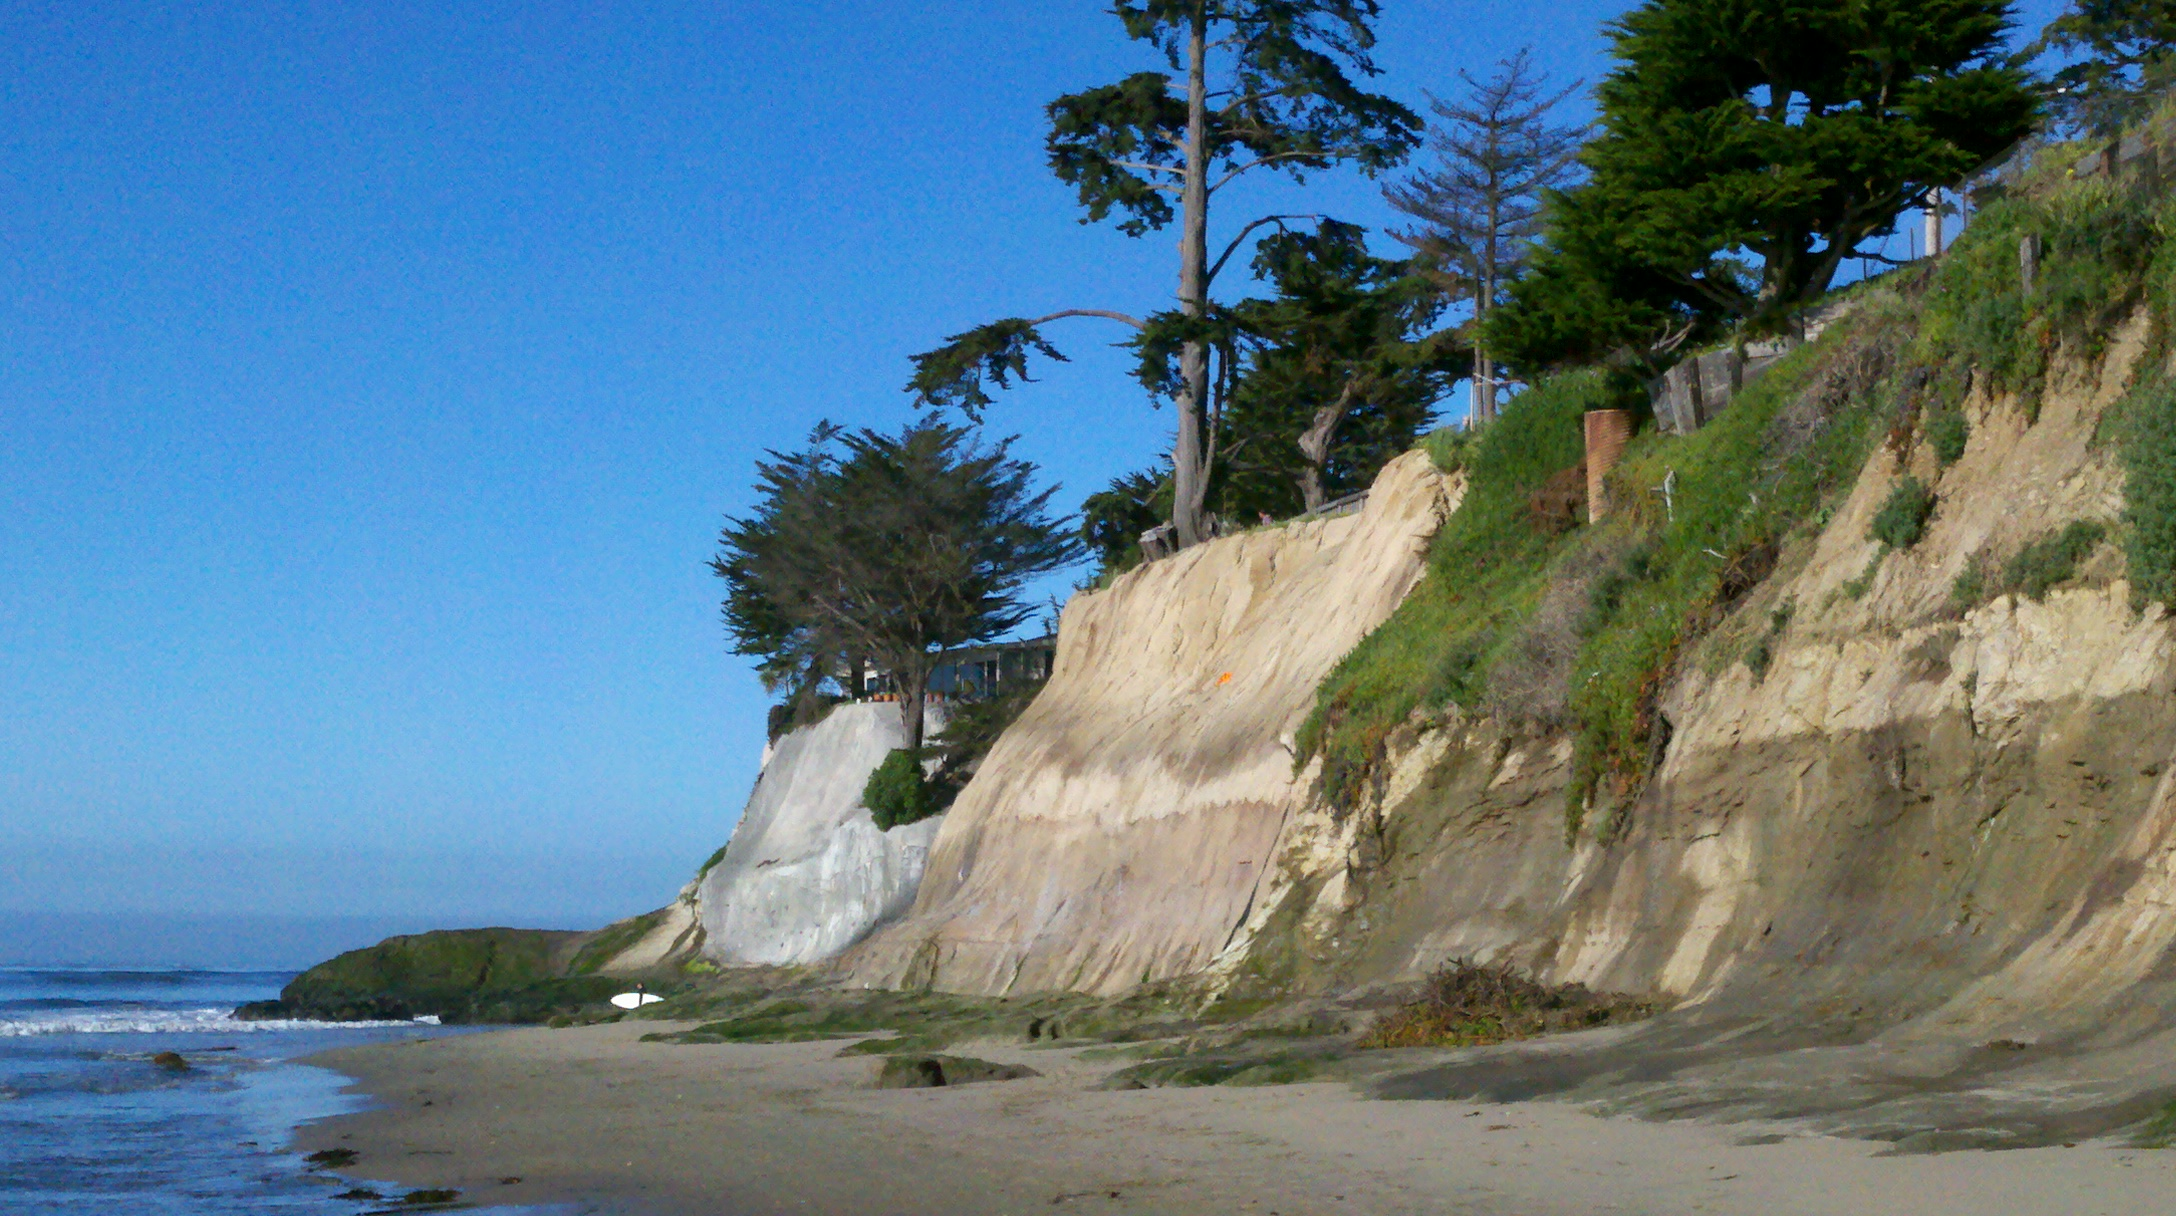 stretch of Santa Cruz beach known as Pleasure Point